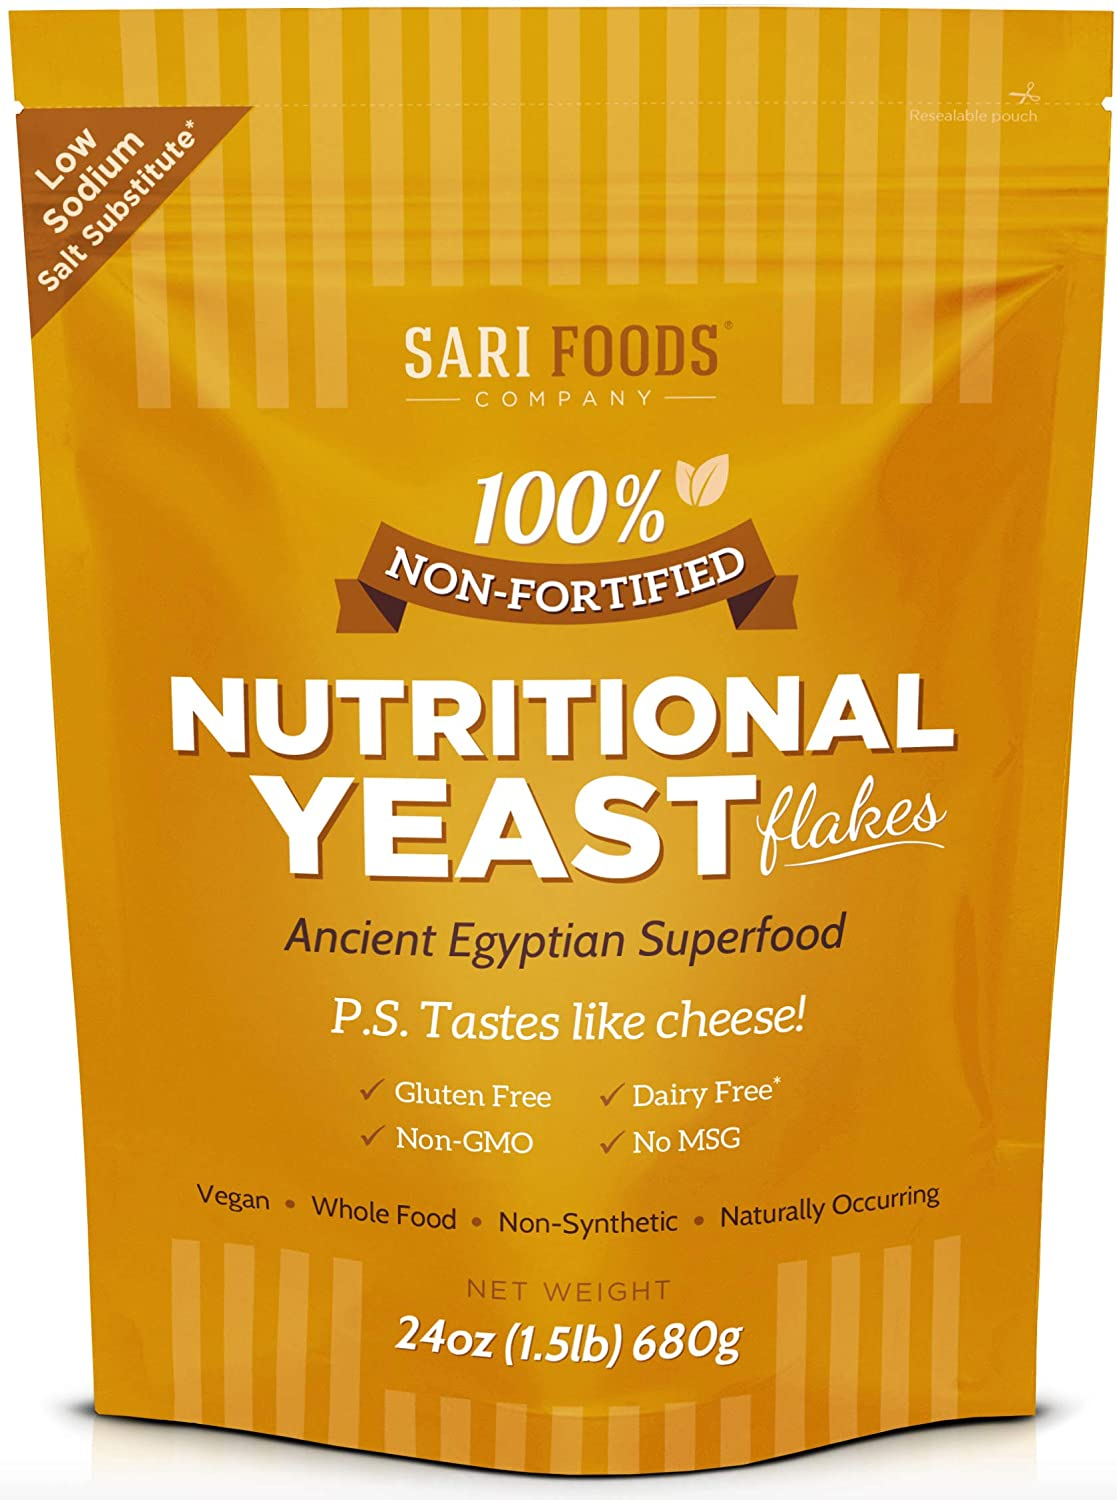 Sari's Natural Non-Fortified Nutritional Yeast